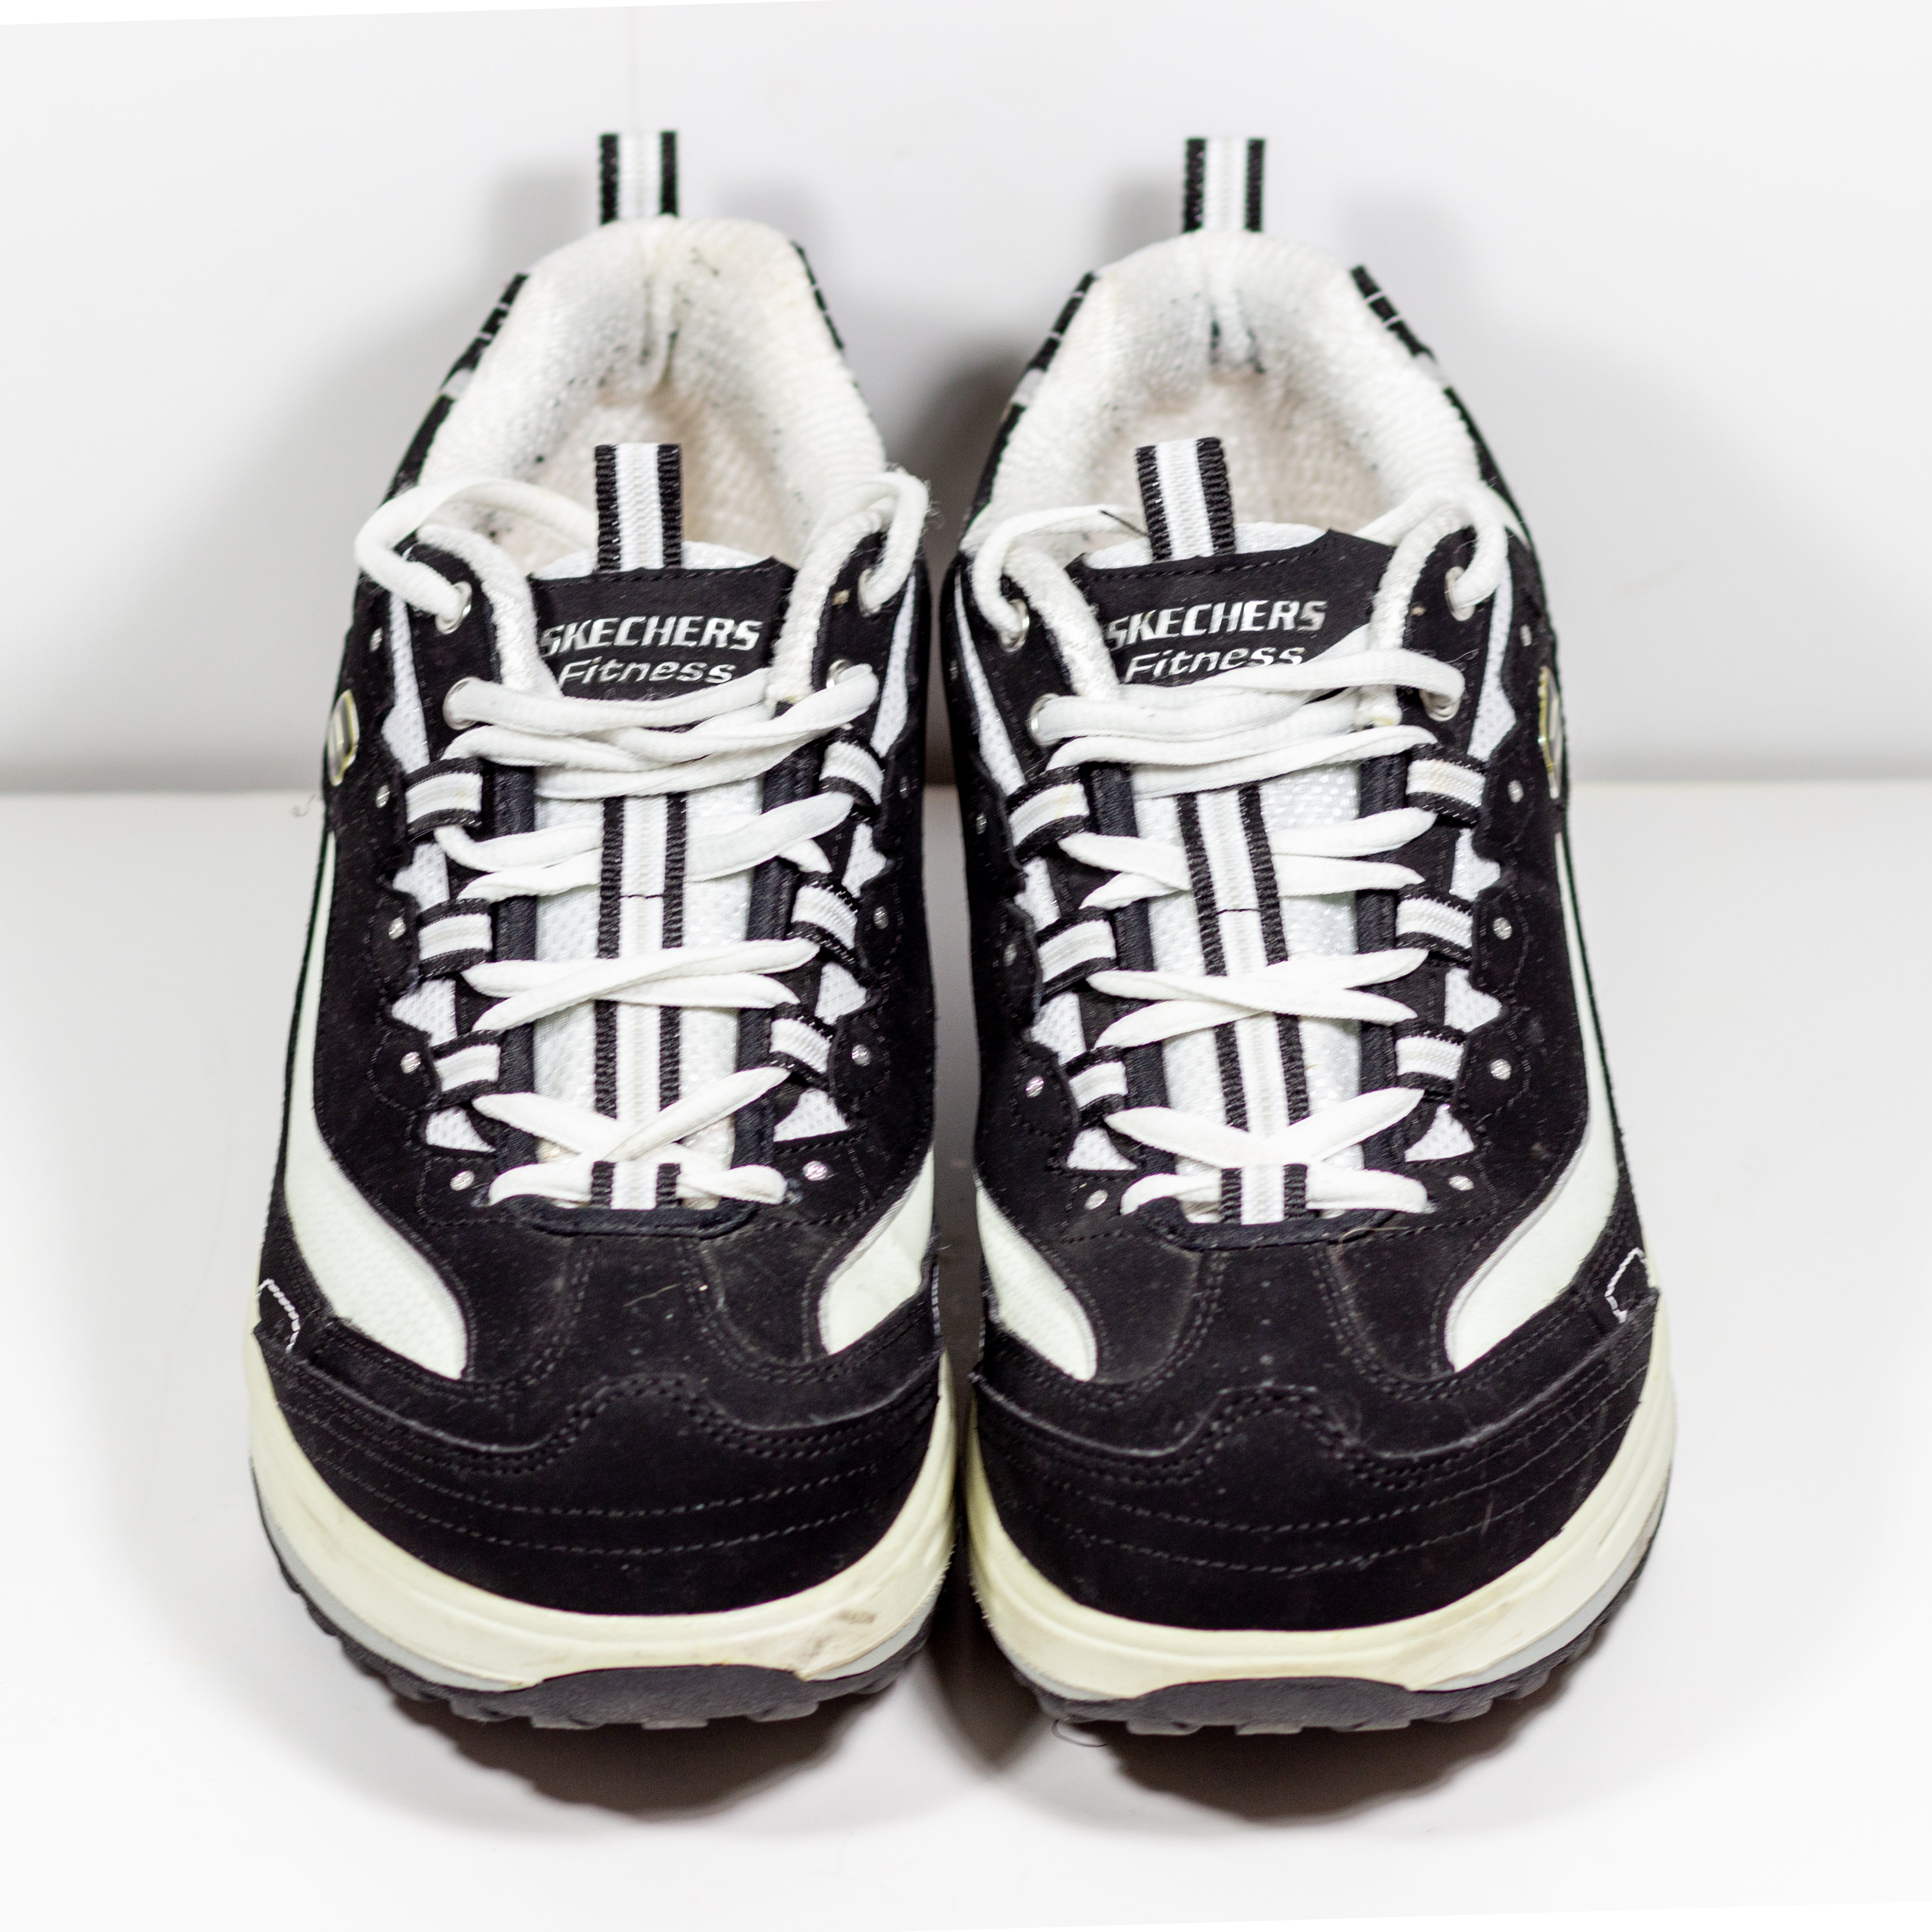 Womens Sketchers Shape Ups Size 8.5 Black Suede White Toning Shoes No Insoles Very Good Pre-Owned condition - Vintage Heaven Shop